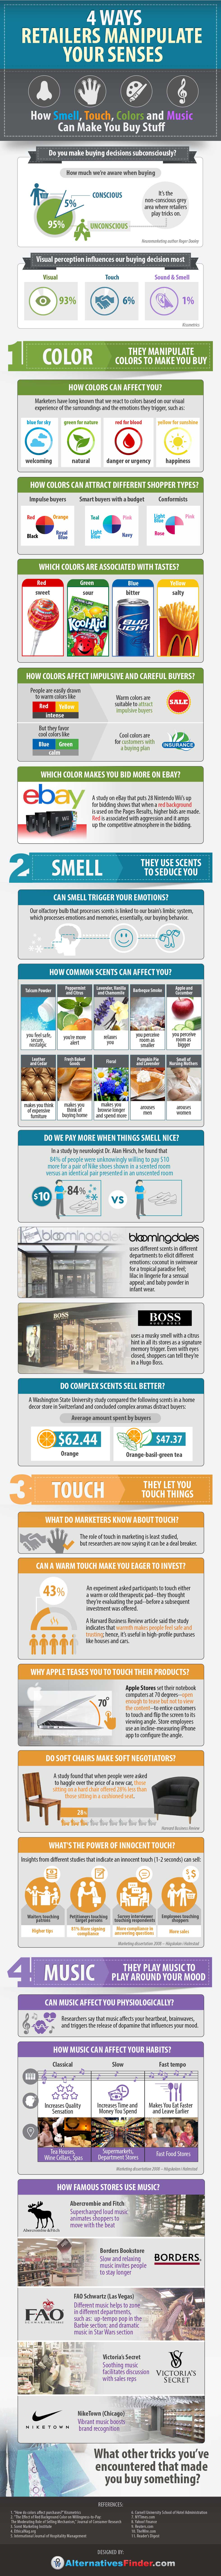 4 Ways Retailers Manipulate your Senses_infographic